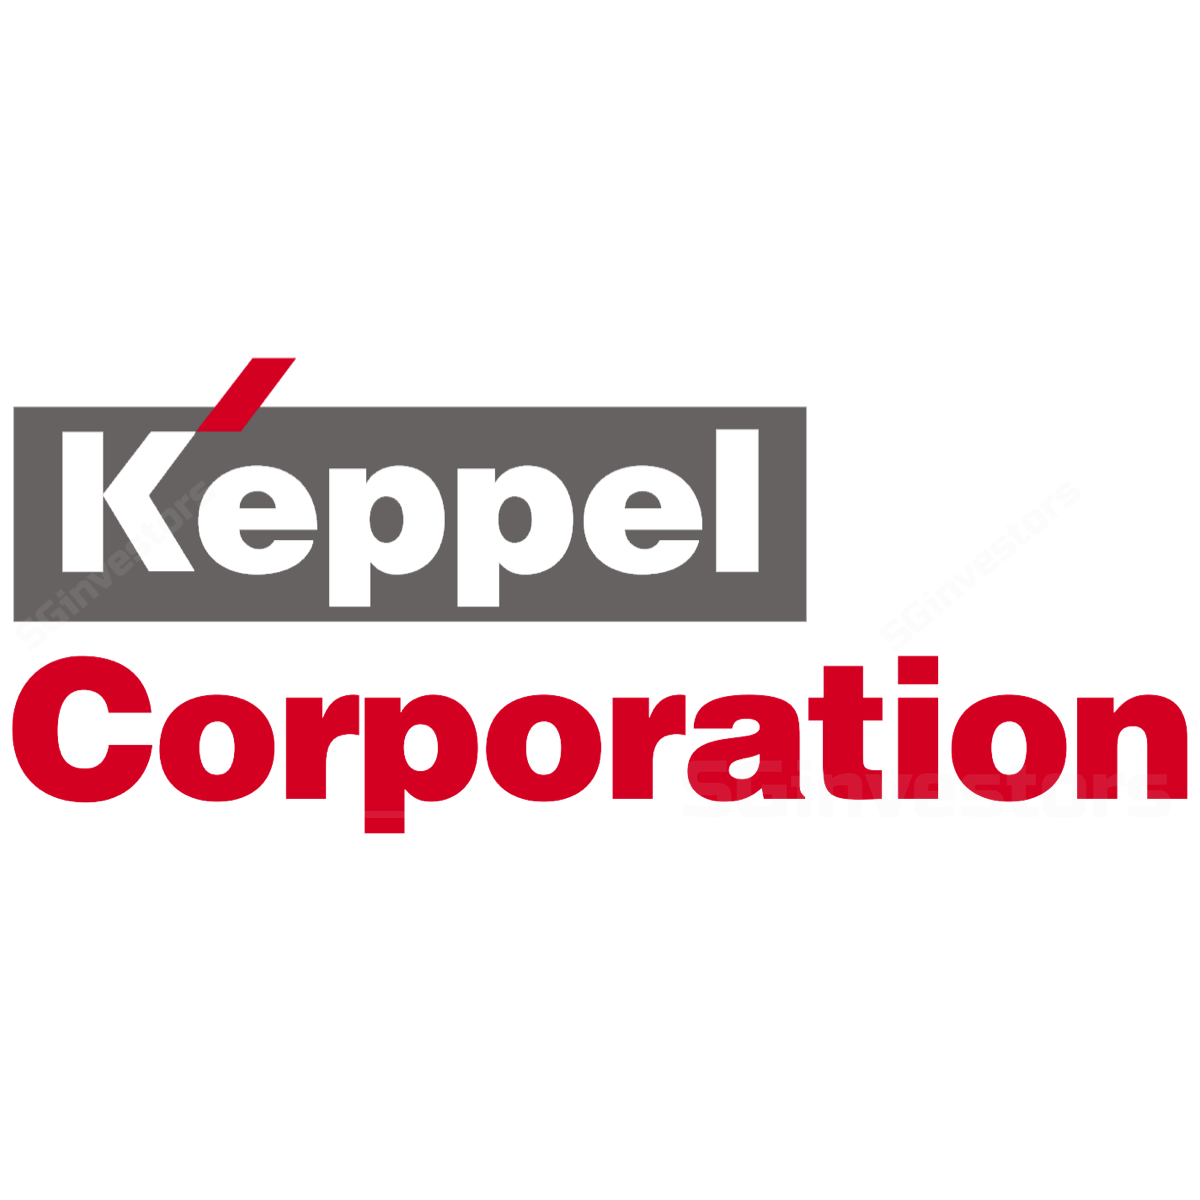 Keppel Corporation - OCBC Investment Research 2018-07-20: A Gift On Its 50th Birthday